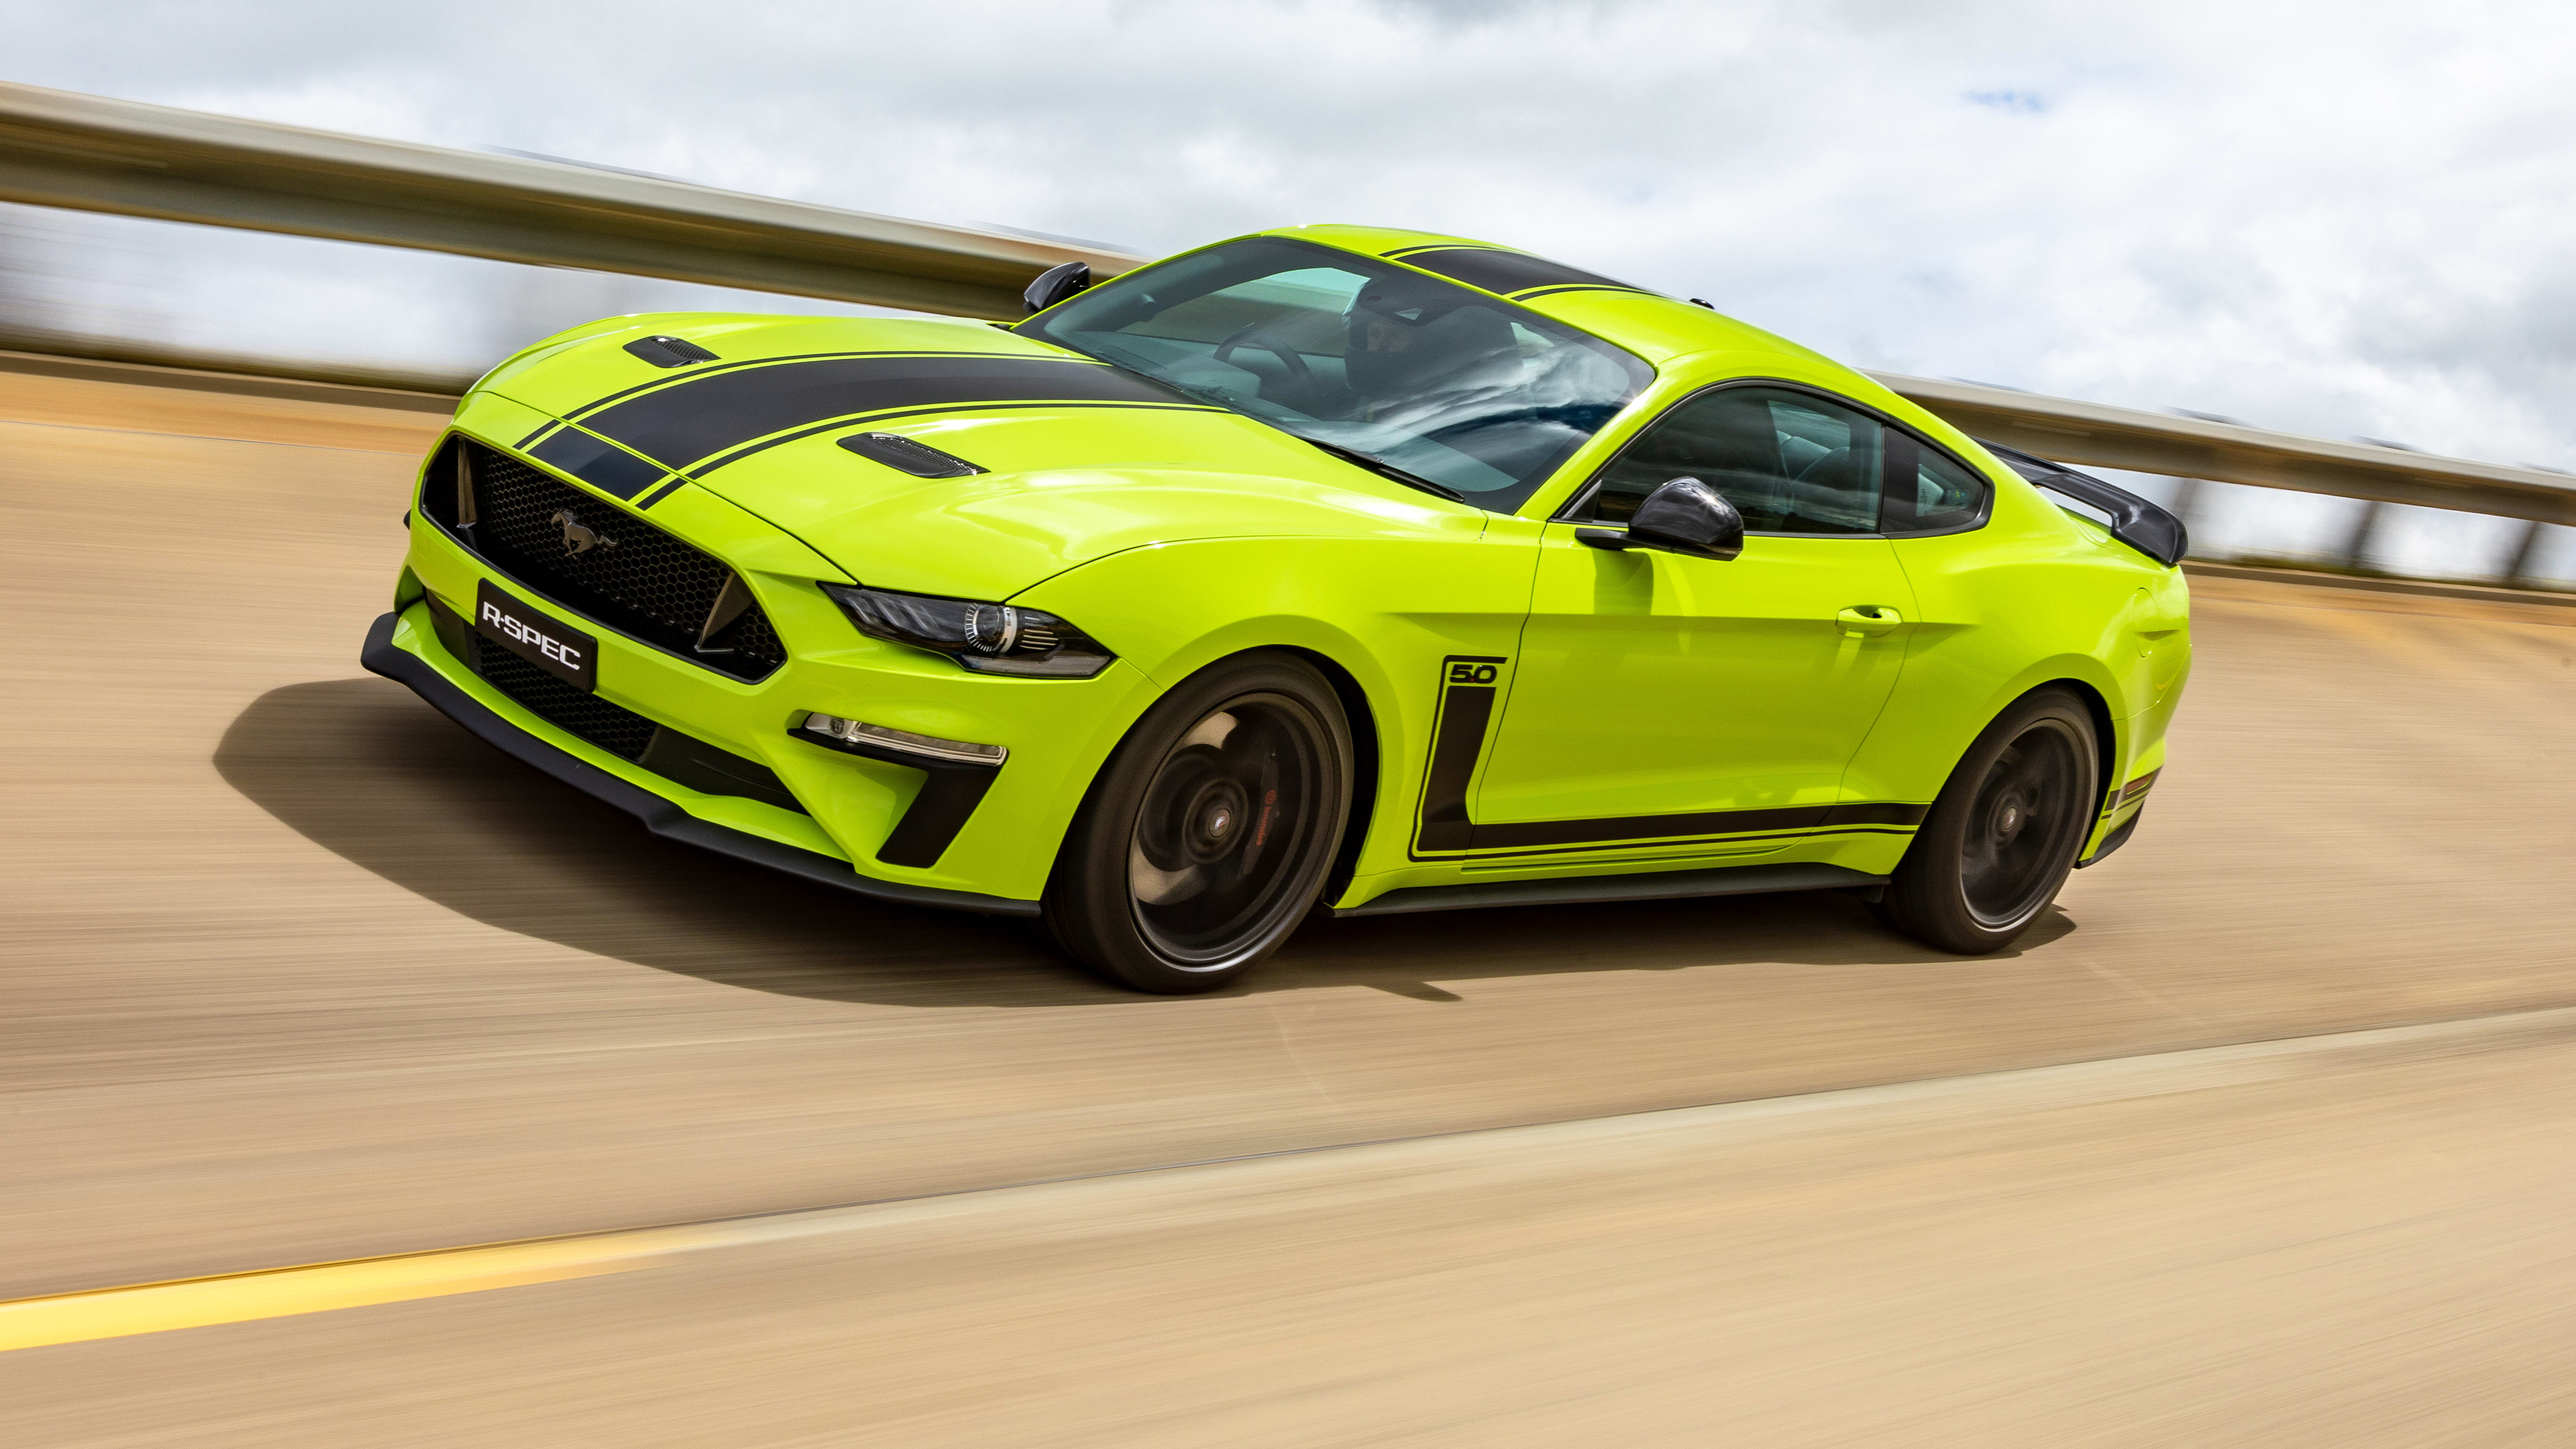 Gone in 60 days: Ford Mustang R-Spec sold out despite $100,000 price